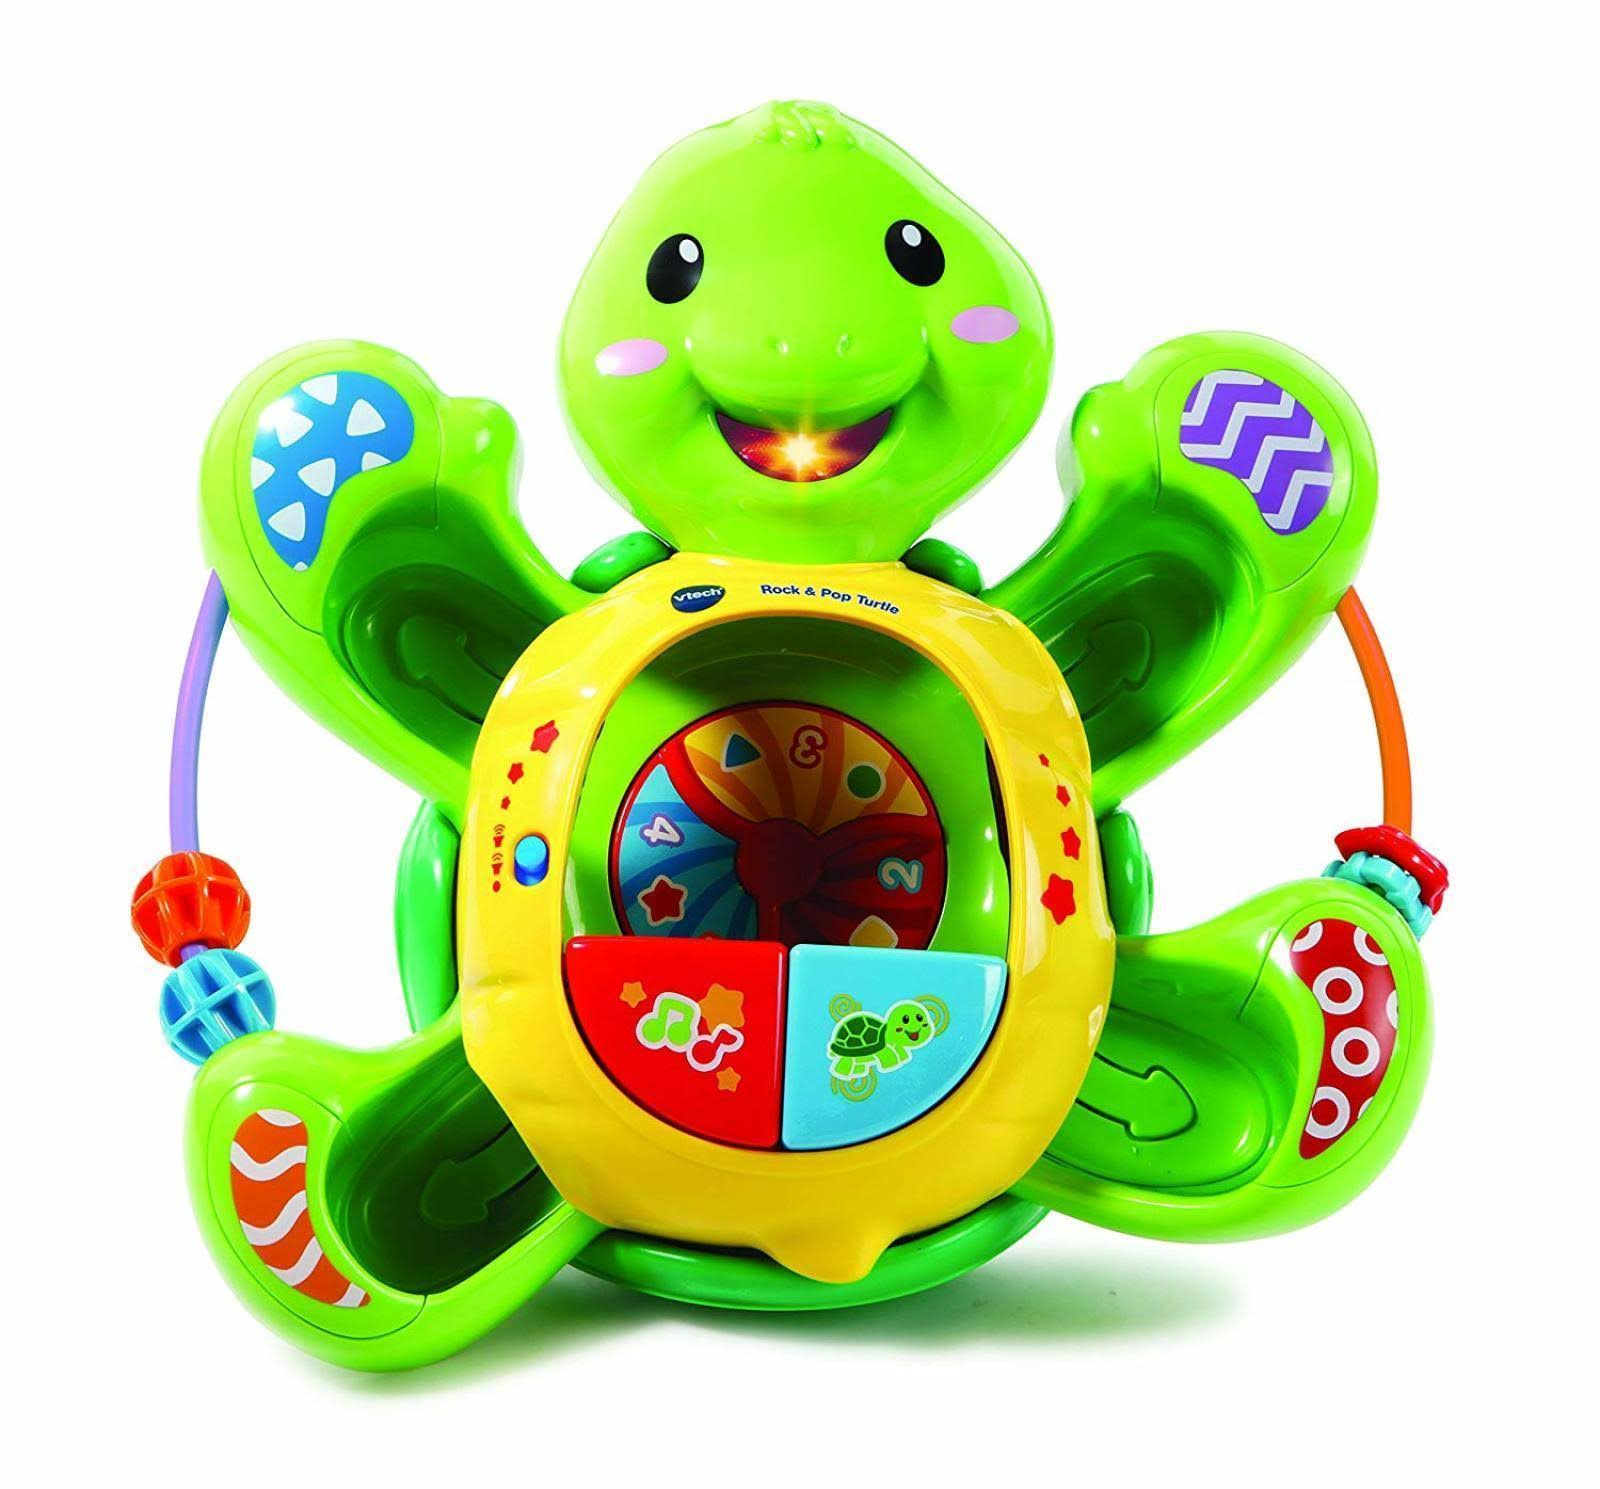 VTech Pop a Ball Rock and Pop Turtle Educational Musical Toy